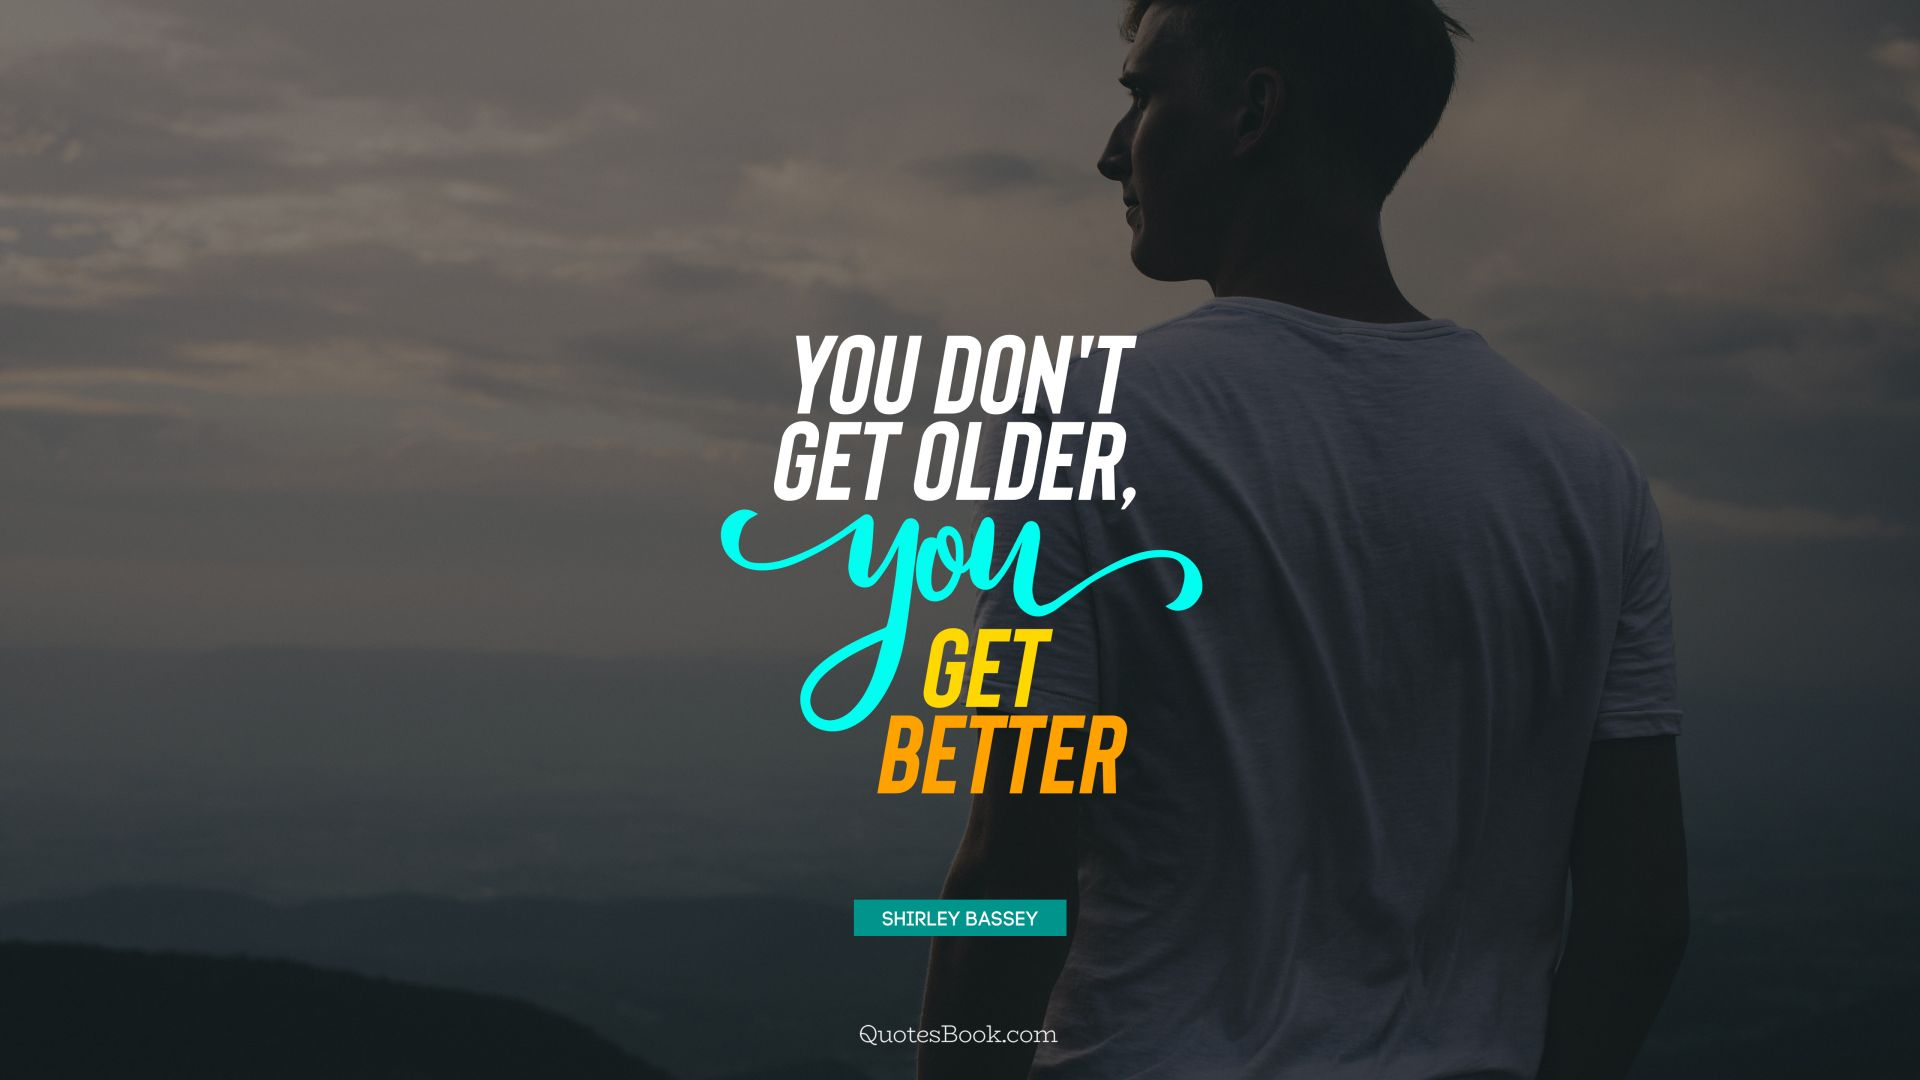 You don't get older, you get better. - Quote by Shirley Bassey